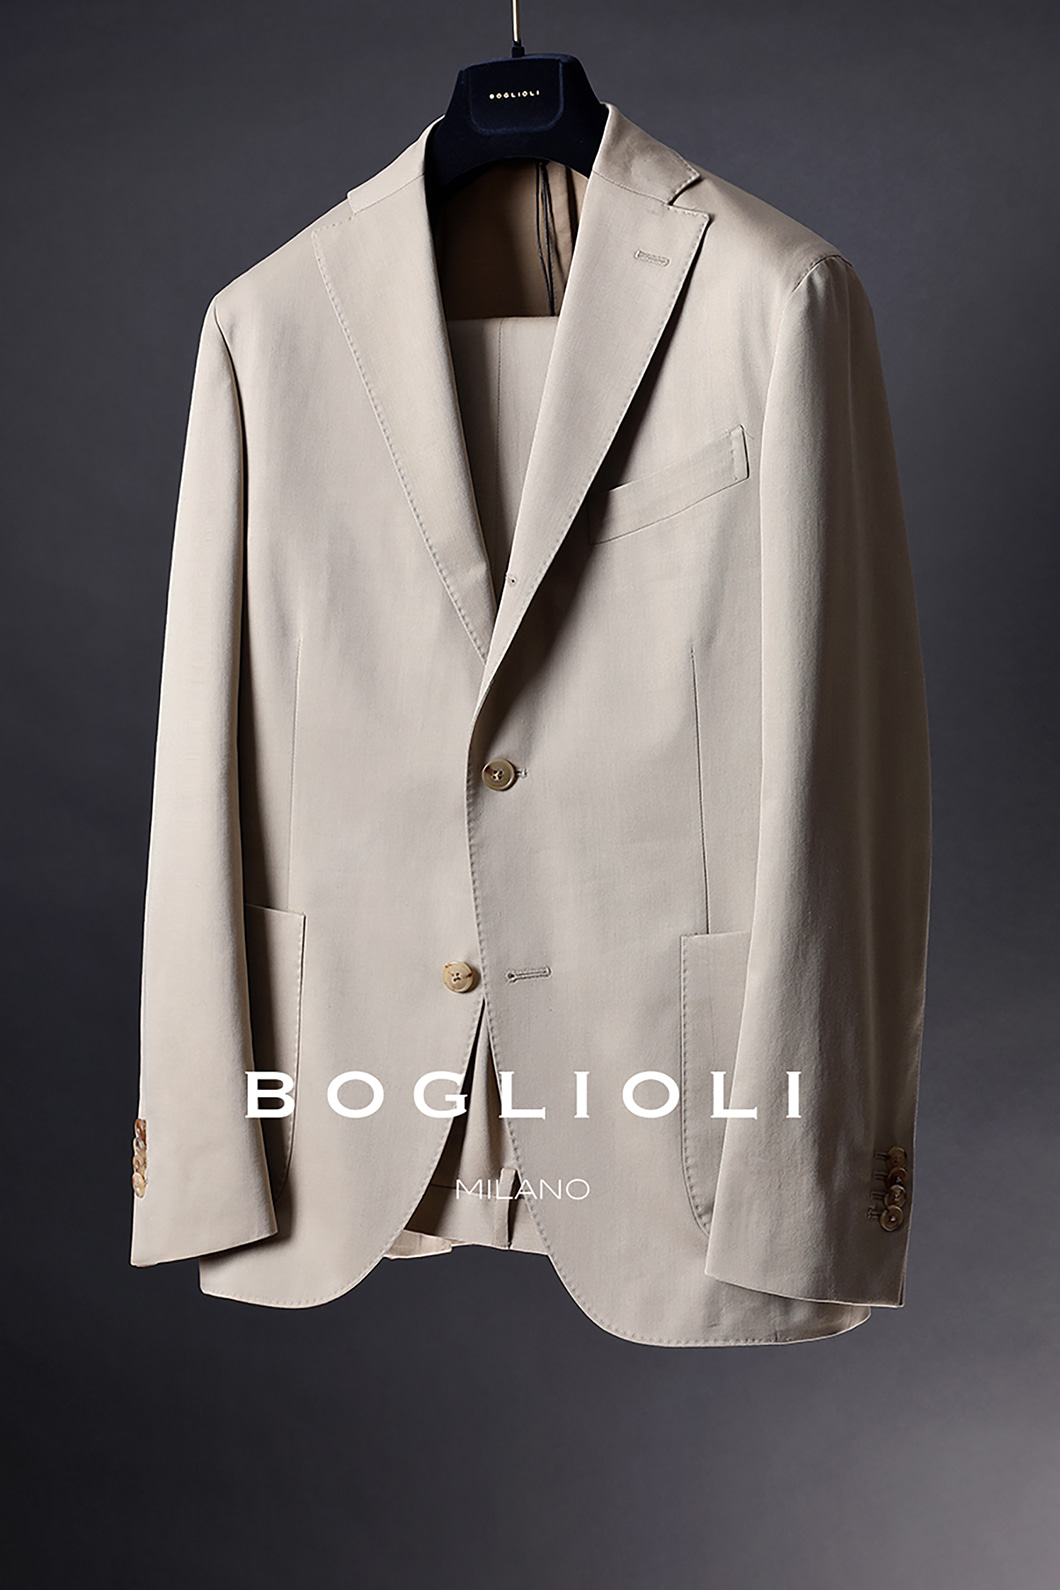 BOGLIOLI SINGLE FORMAL SUIT-BEIGE[ITALY-Original]